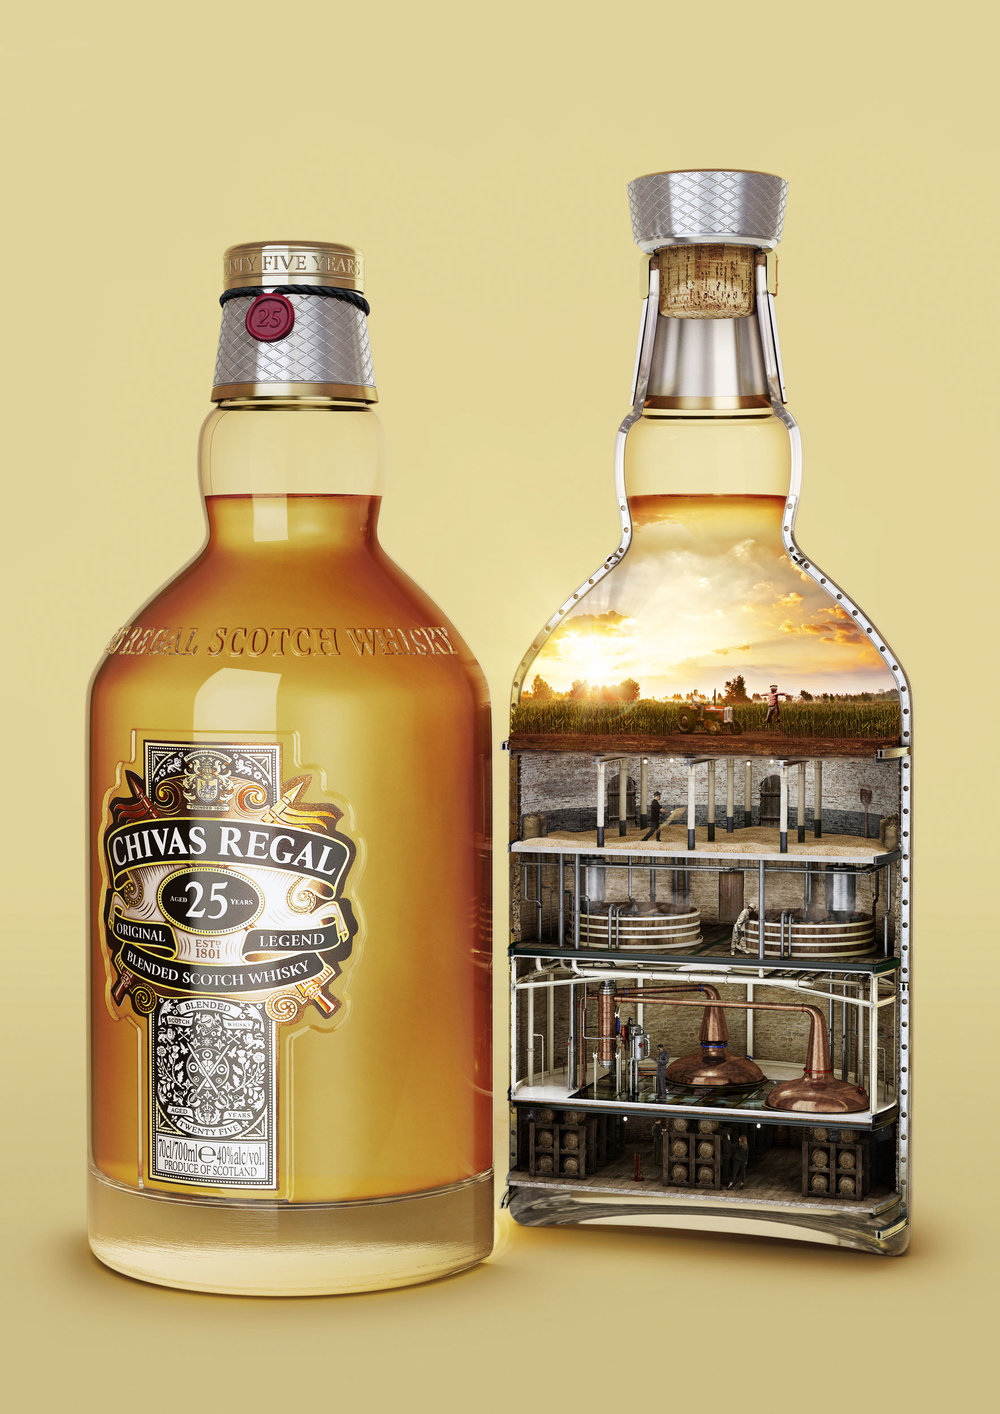 BOOM_CGI_FOODANDDRINKS_chivas-regal-25.jpg